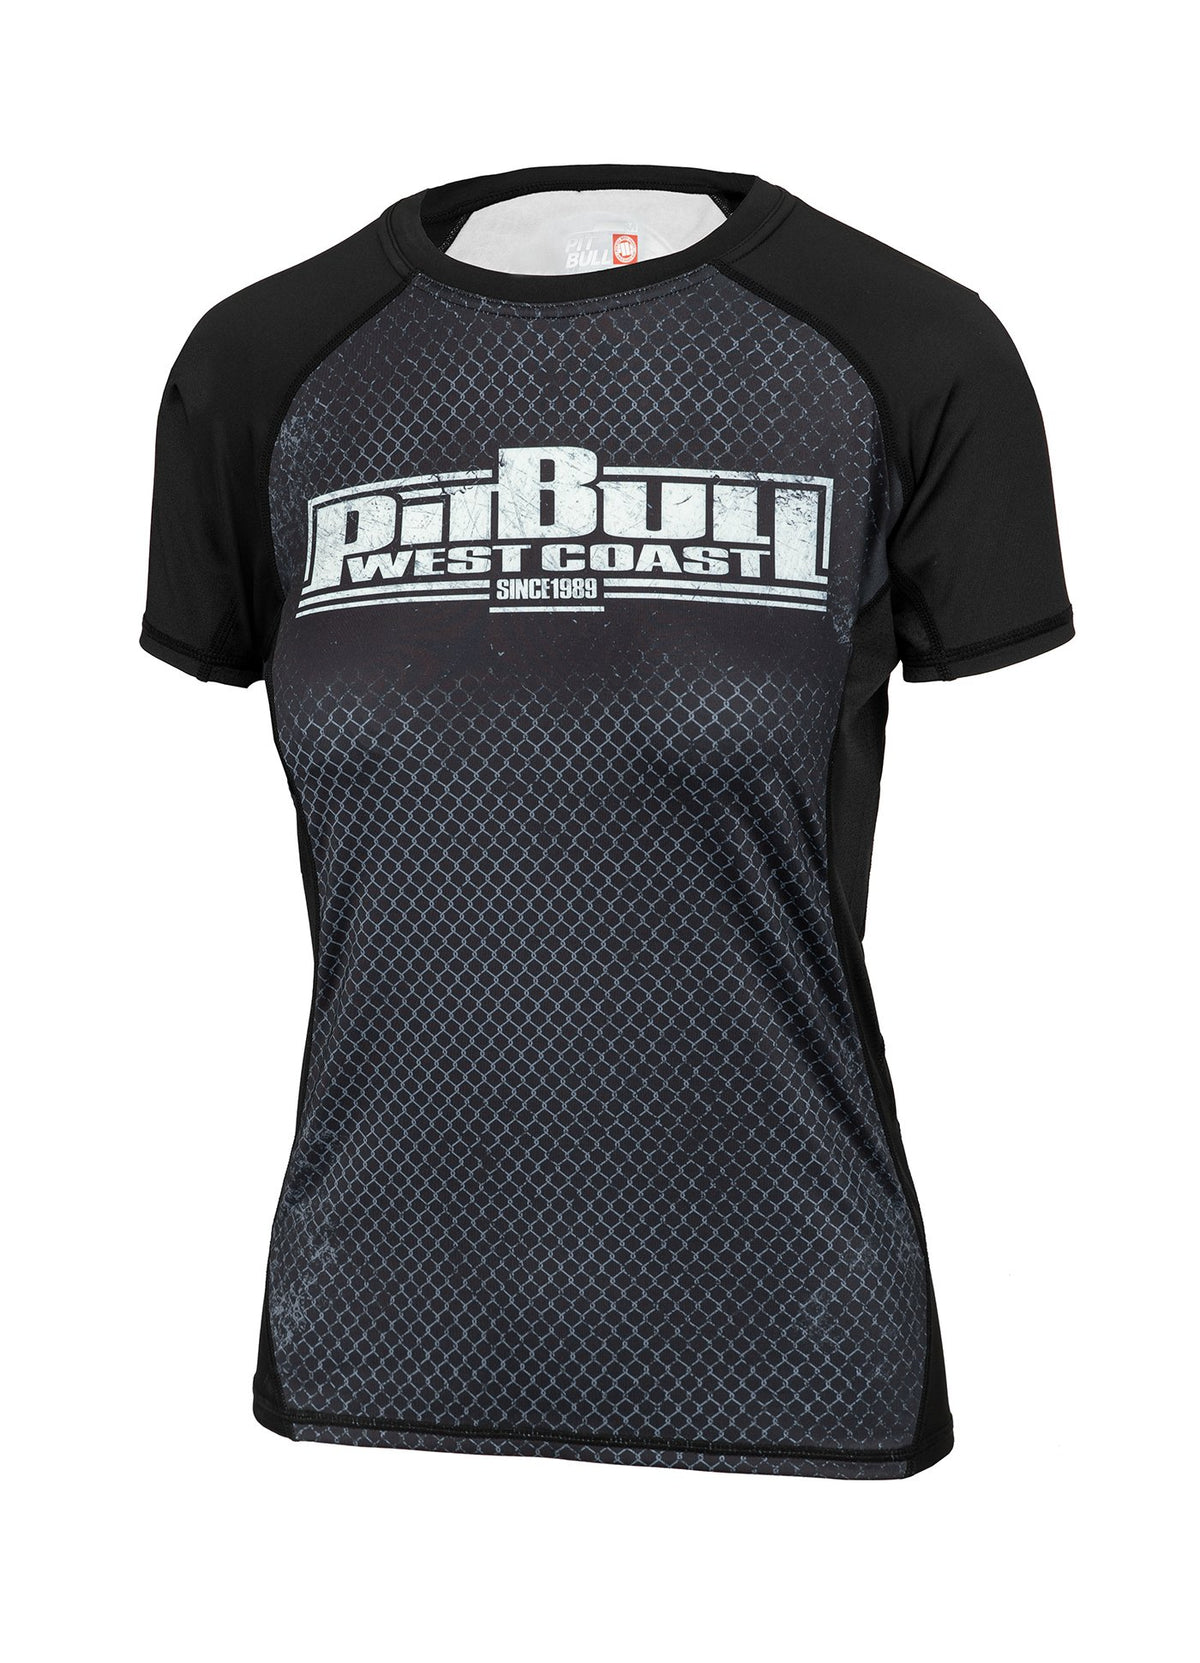 WOMEN RASHGUARD PERFORMANCE CAGE - Pitbull West Coast U.S.A.